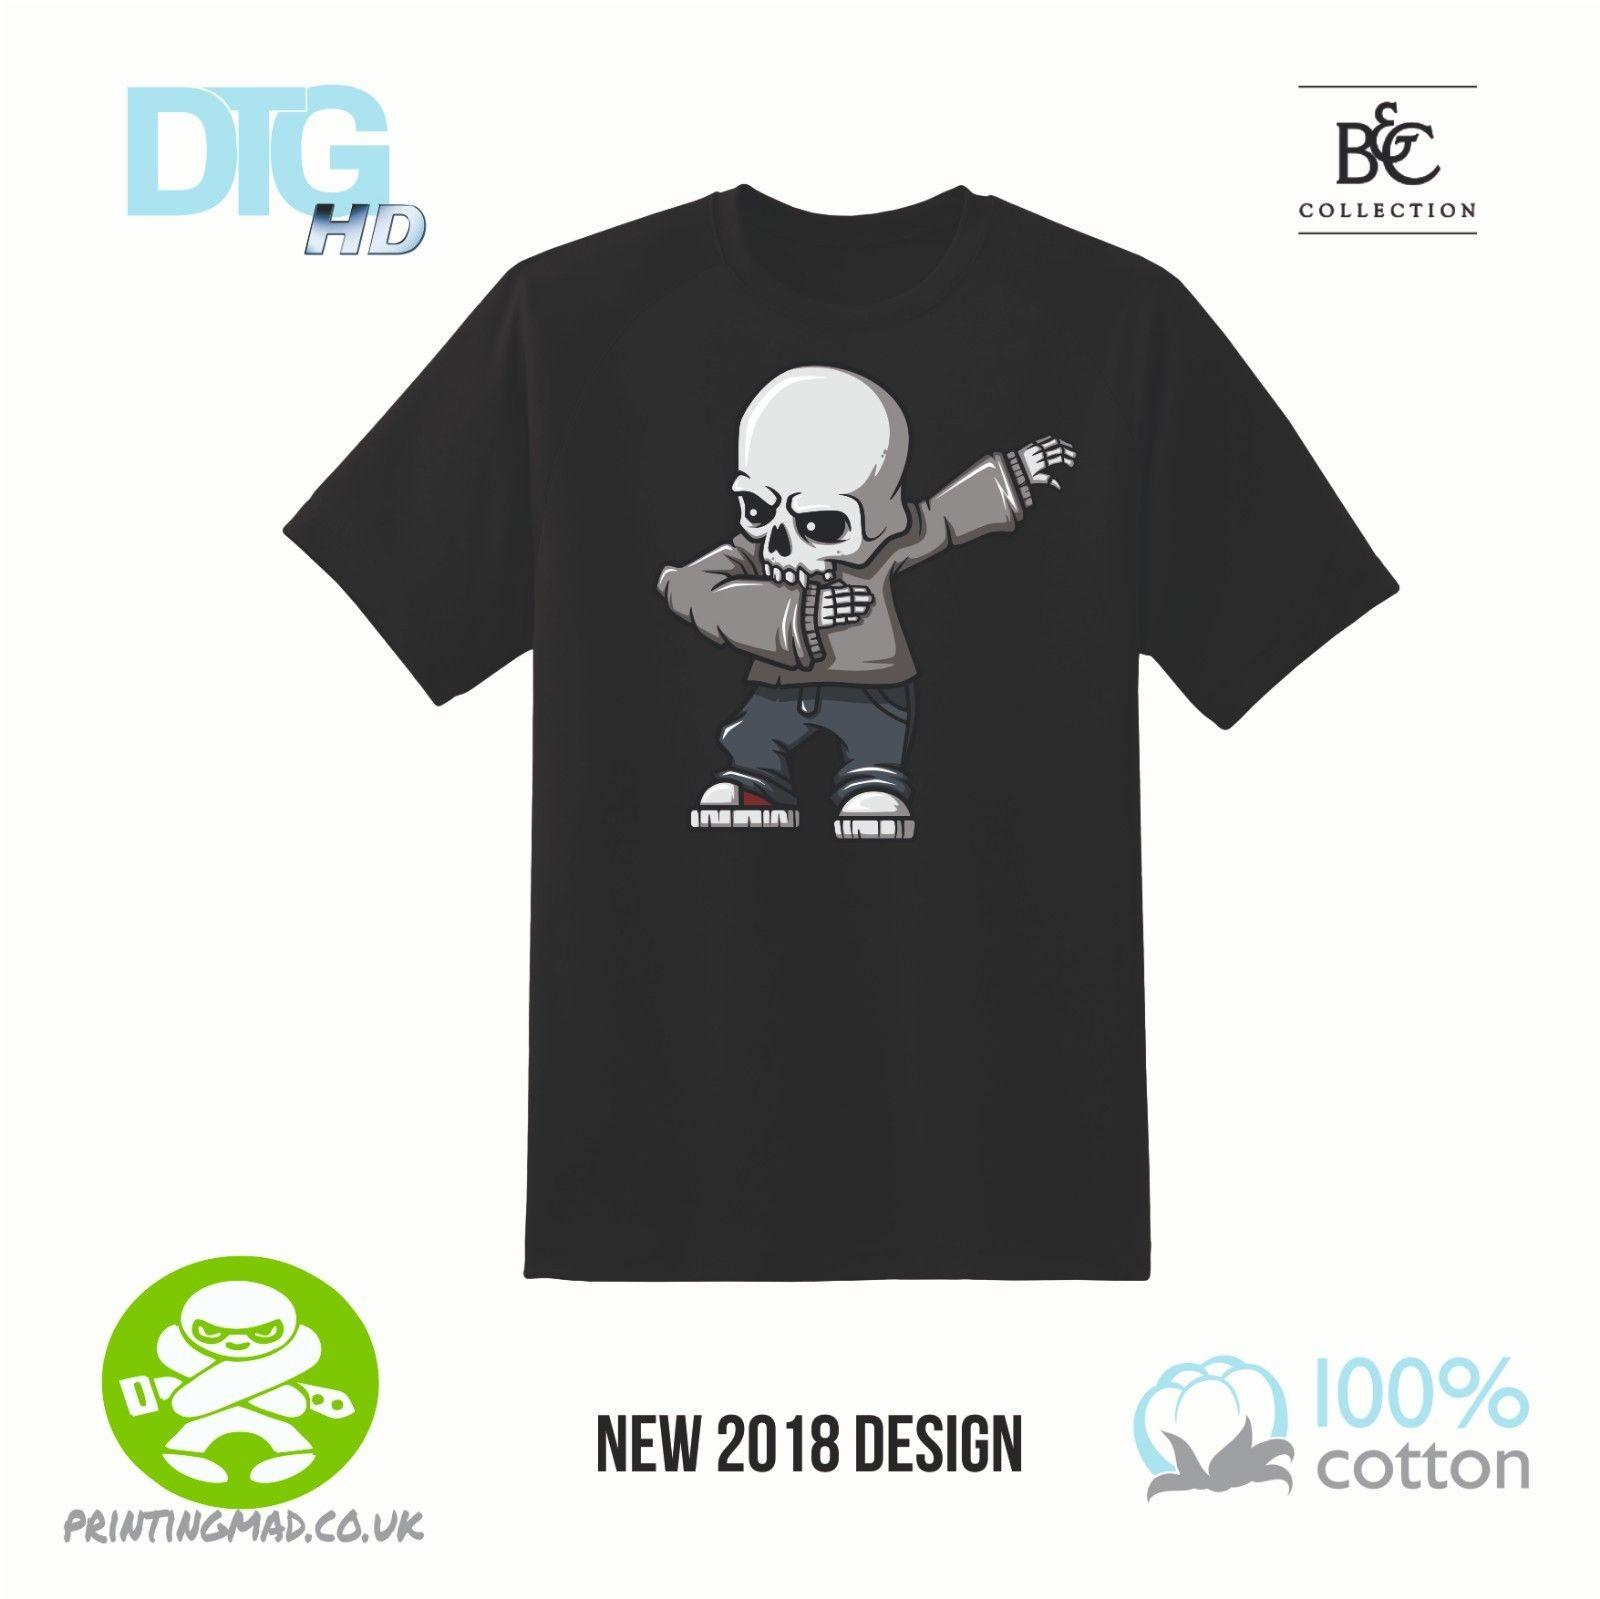 a5c59d3491 dab skeleton halloween black tshirt DTG. KIDS LADIES MENS New  Brand-Clothing Tee 2018 Summer 100% Cotton